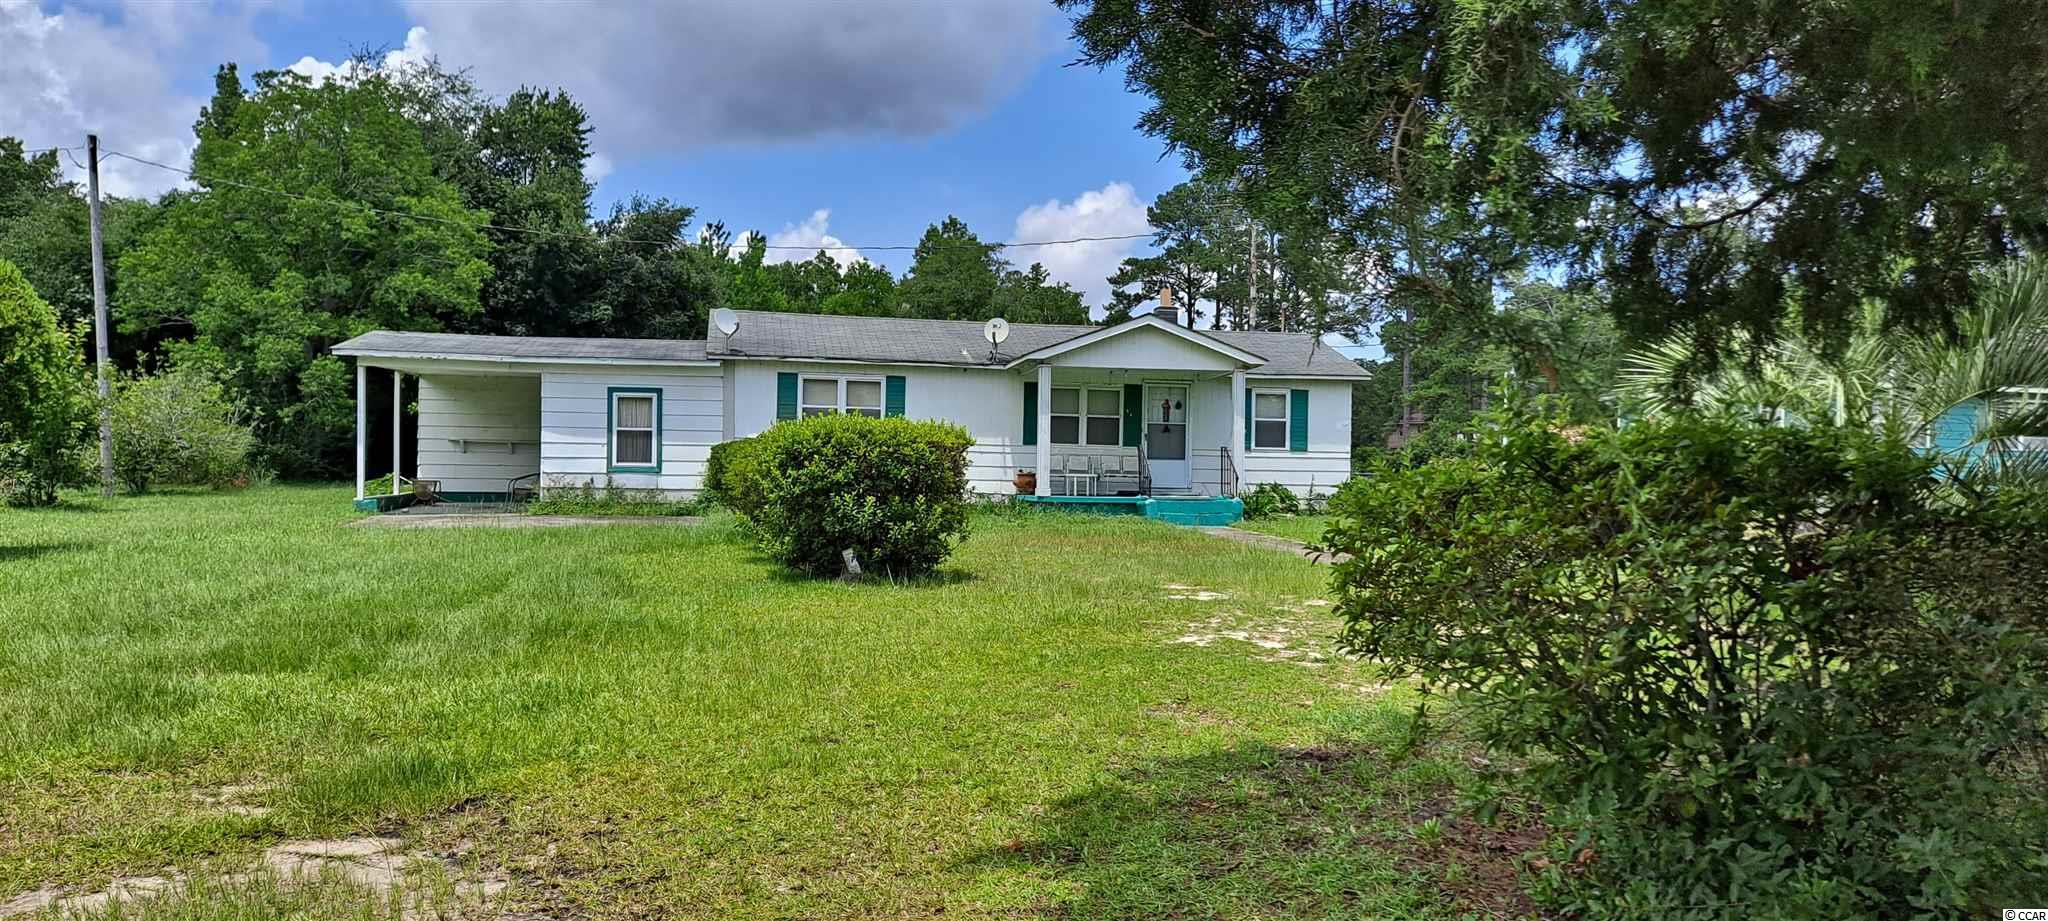 Three bedroom one bath on approximately one acre.  Needs work!  House is a fixer-upper. Square footage is approximate and not guaranteed. Buyer is responsible for verification.